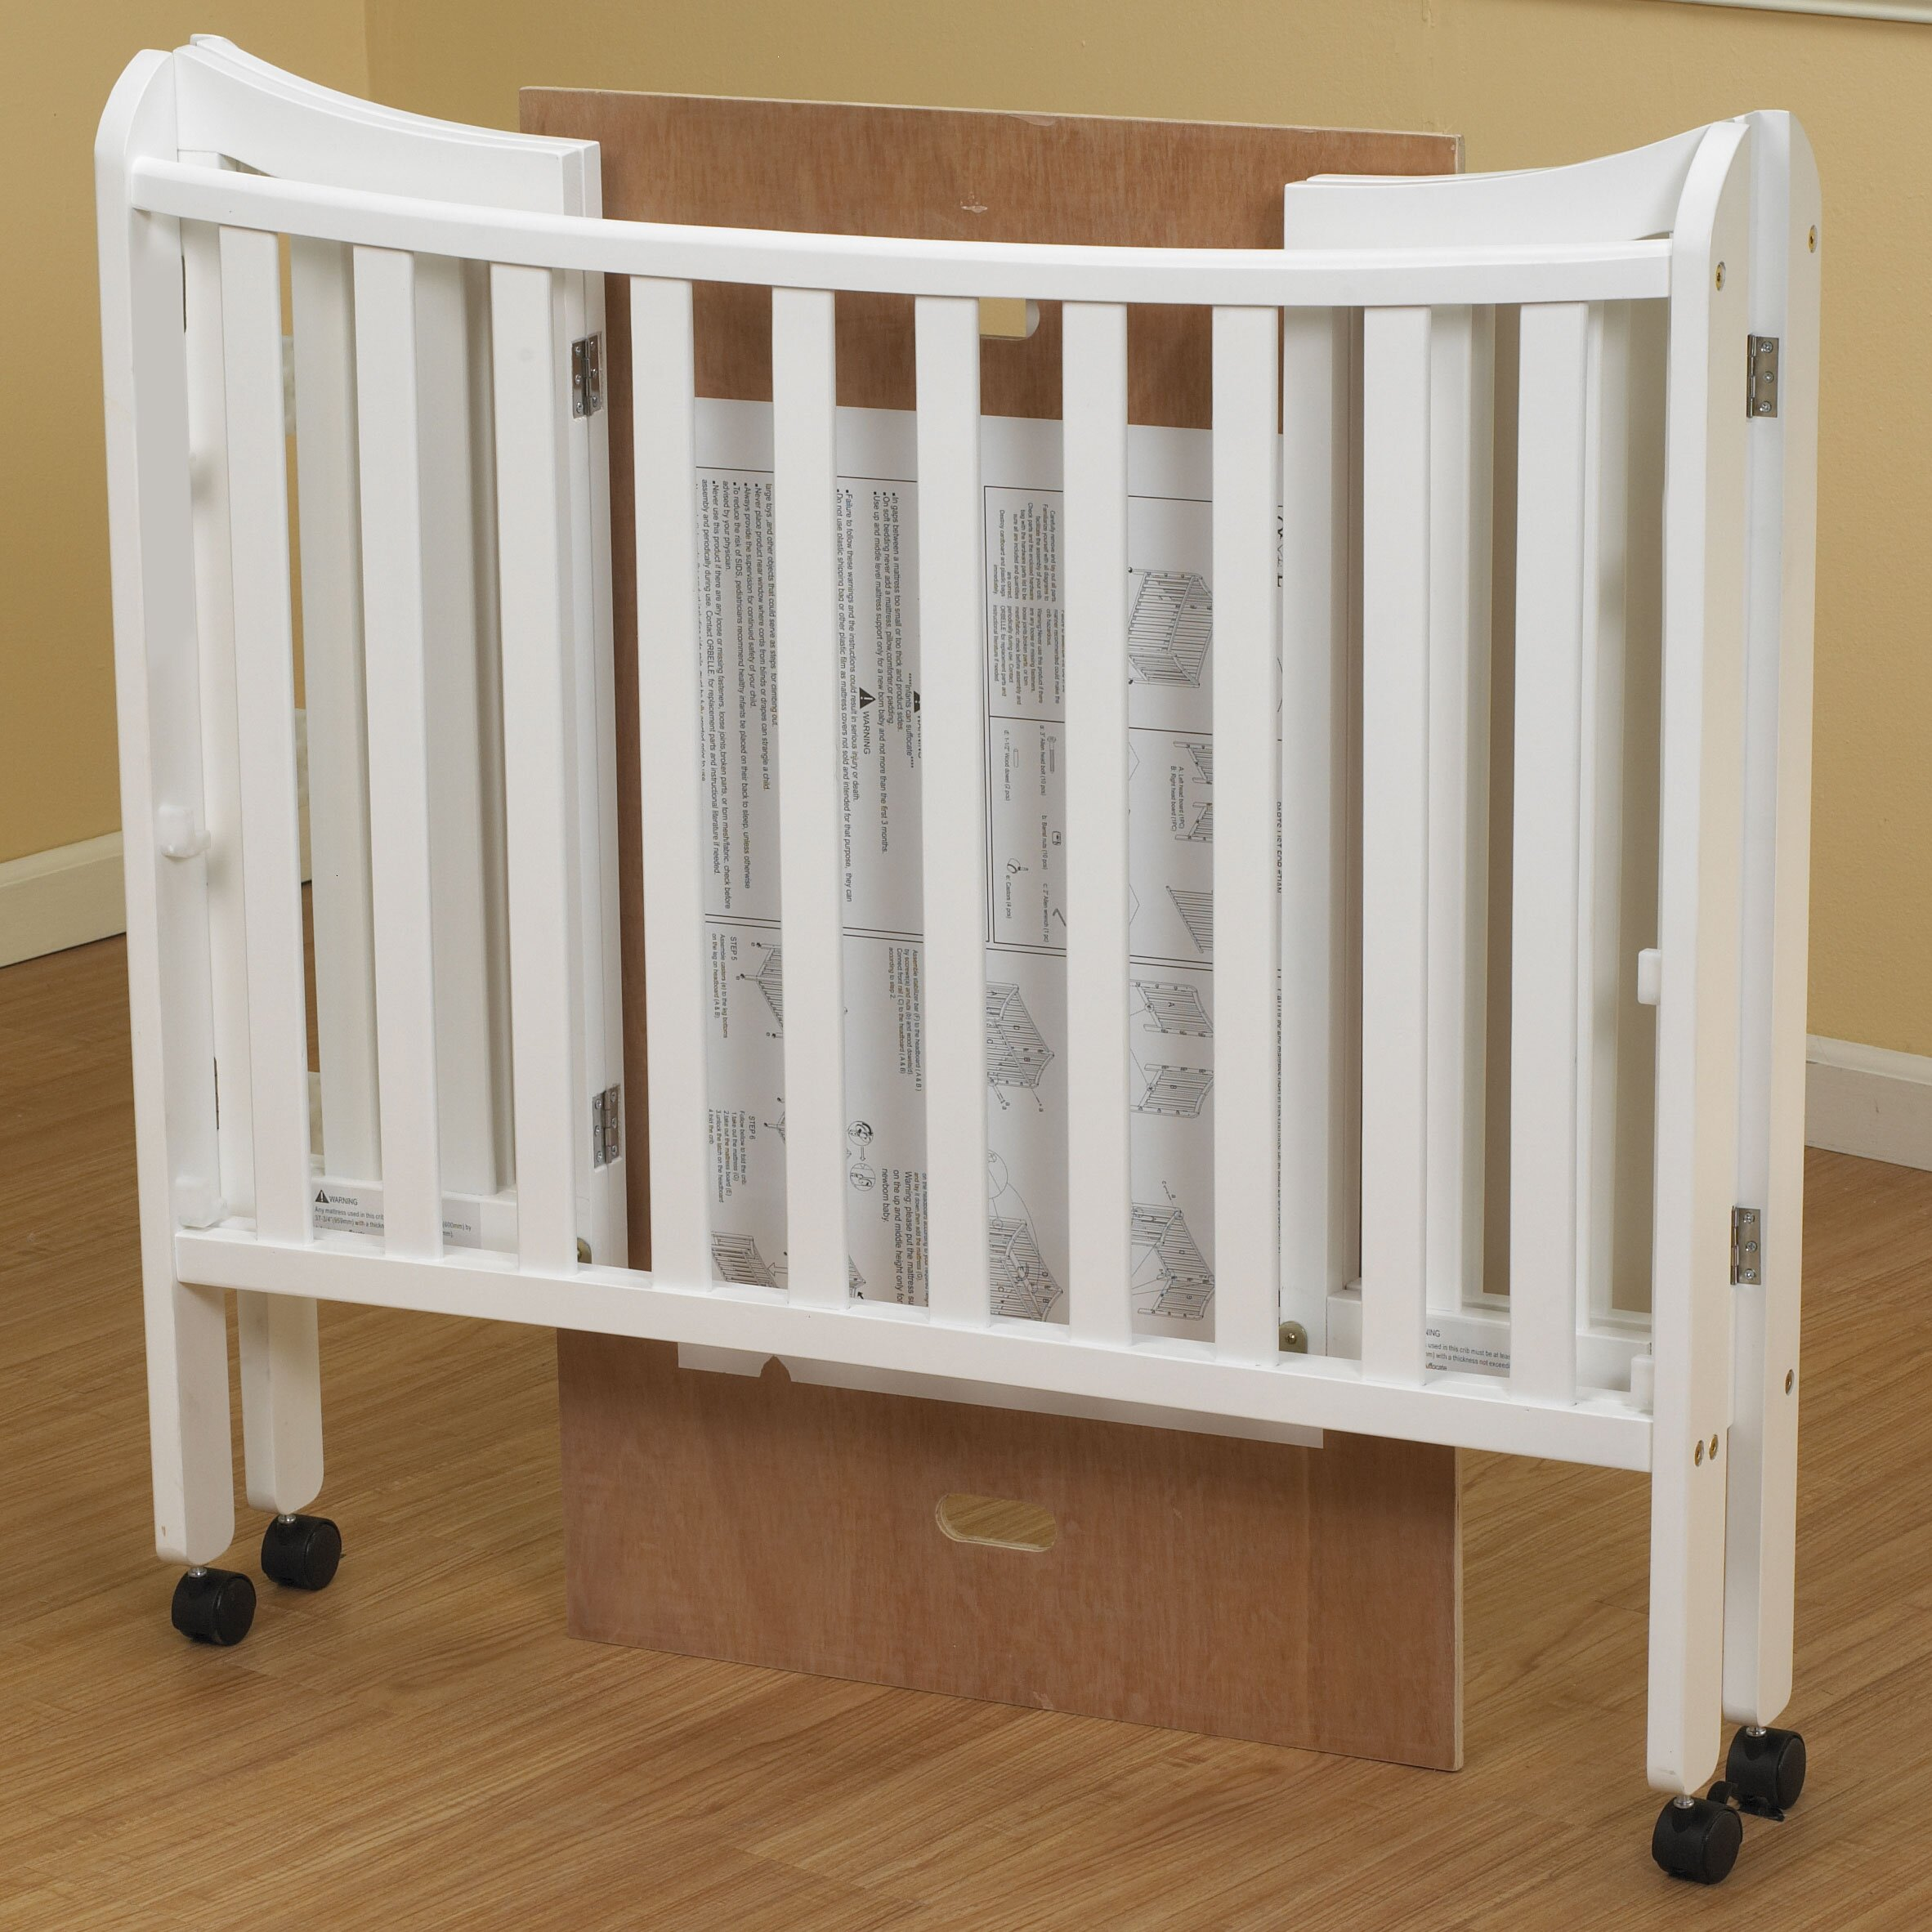 Crib heights for babies - Orbelle Trading Tian Convertible Crib With Mattress